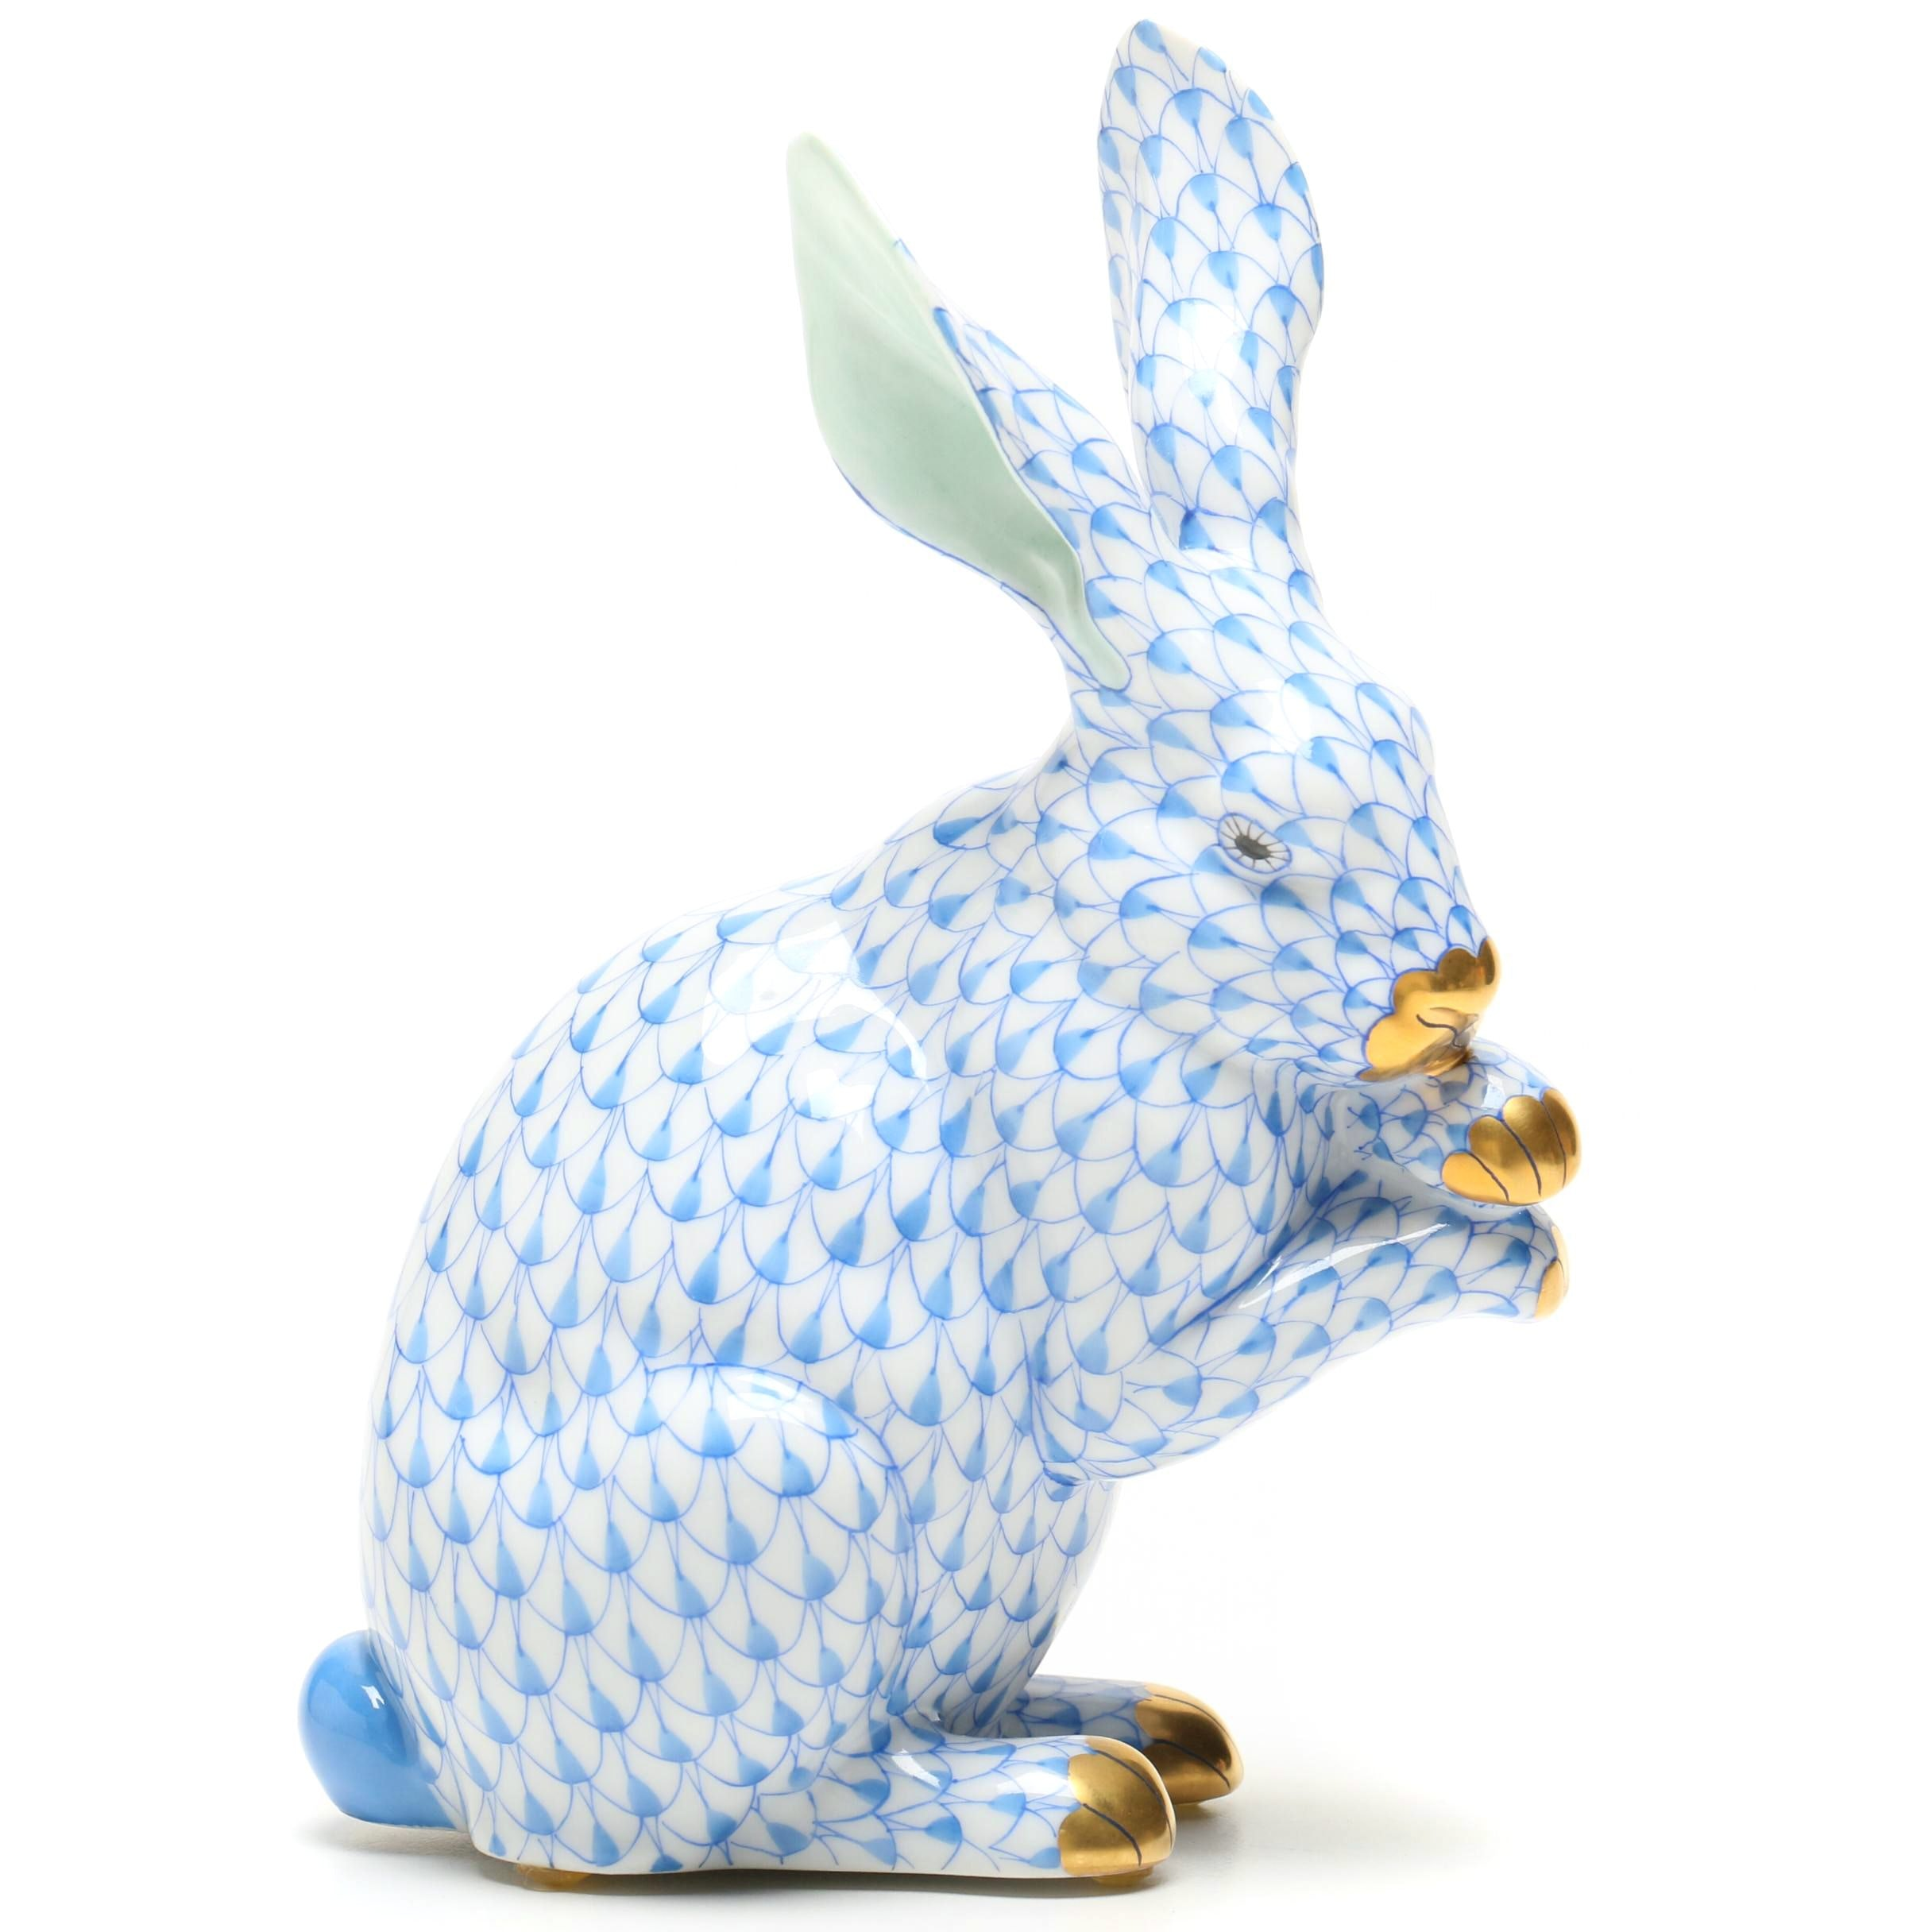 Herend Hungary Porcelain Rabbit Figurine